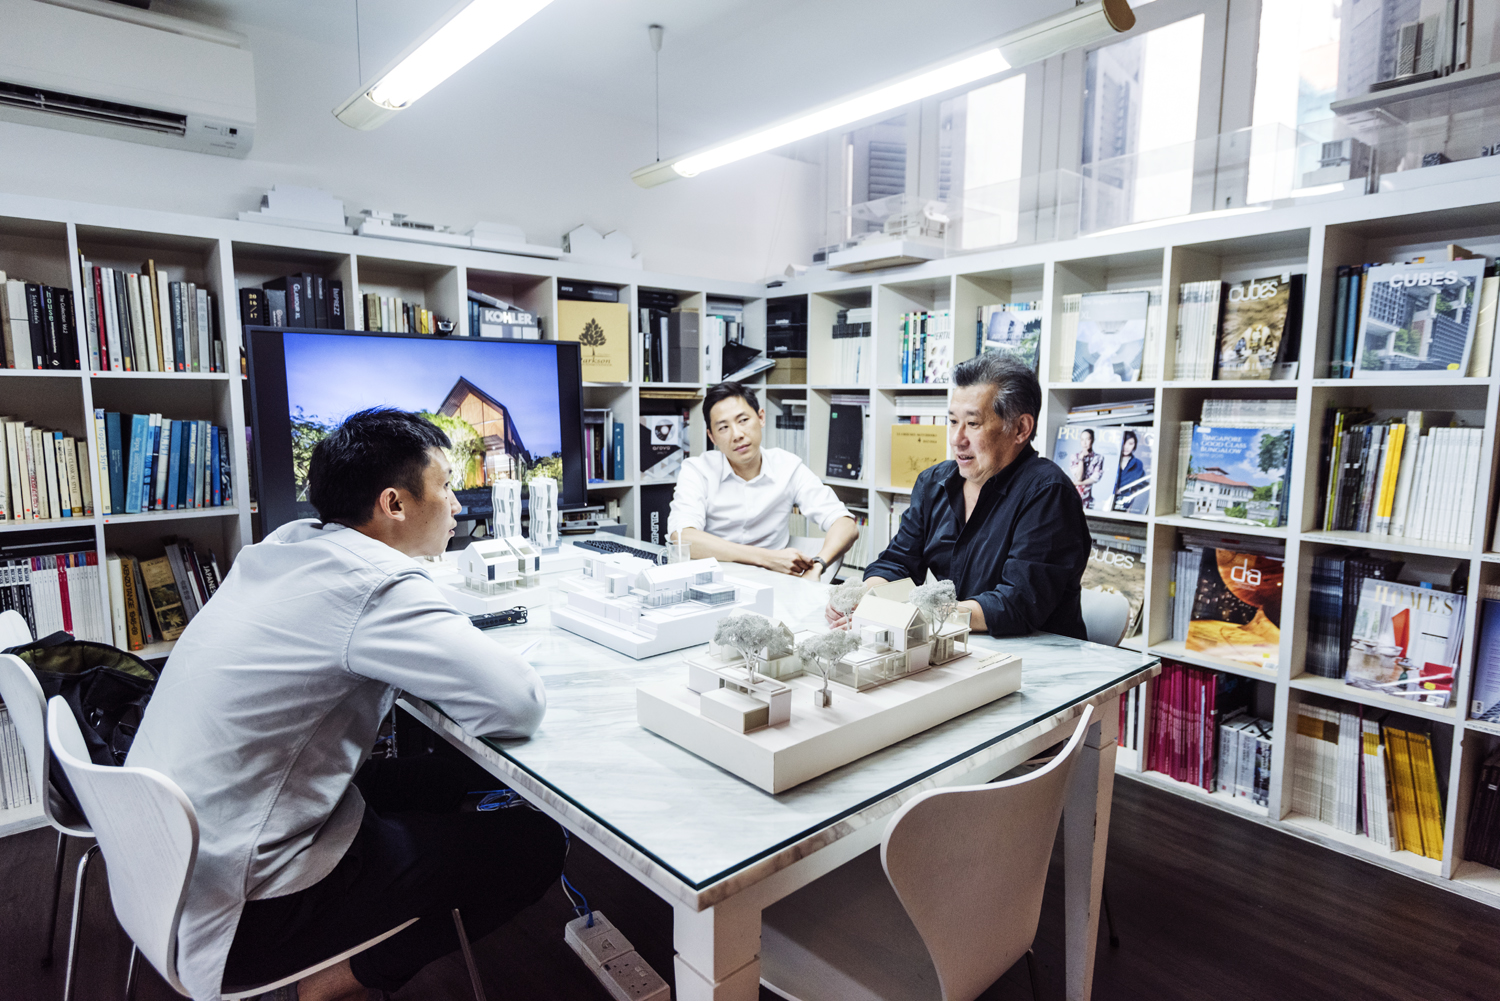 Architects Rene Tan and Jonathan Quek at the interview in their office